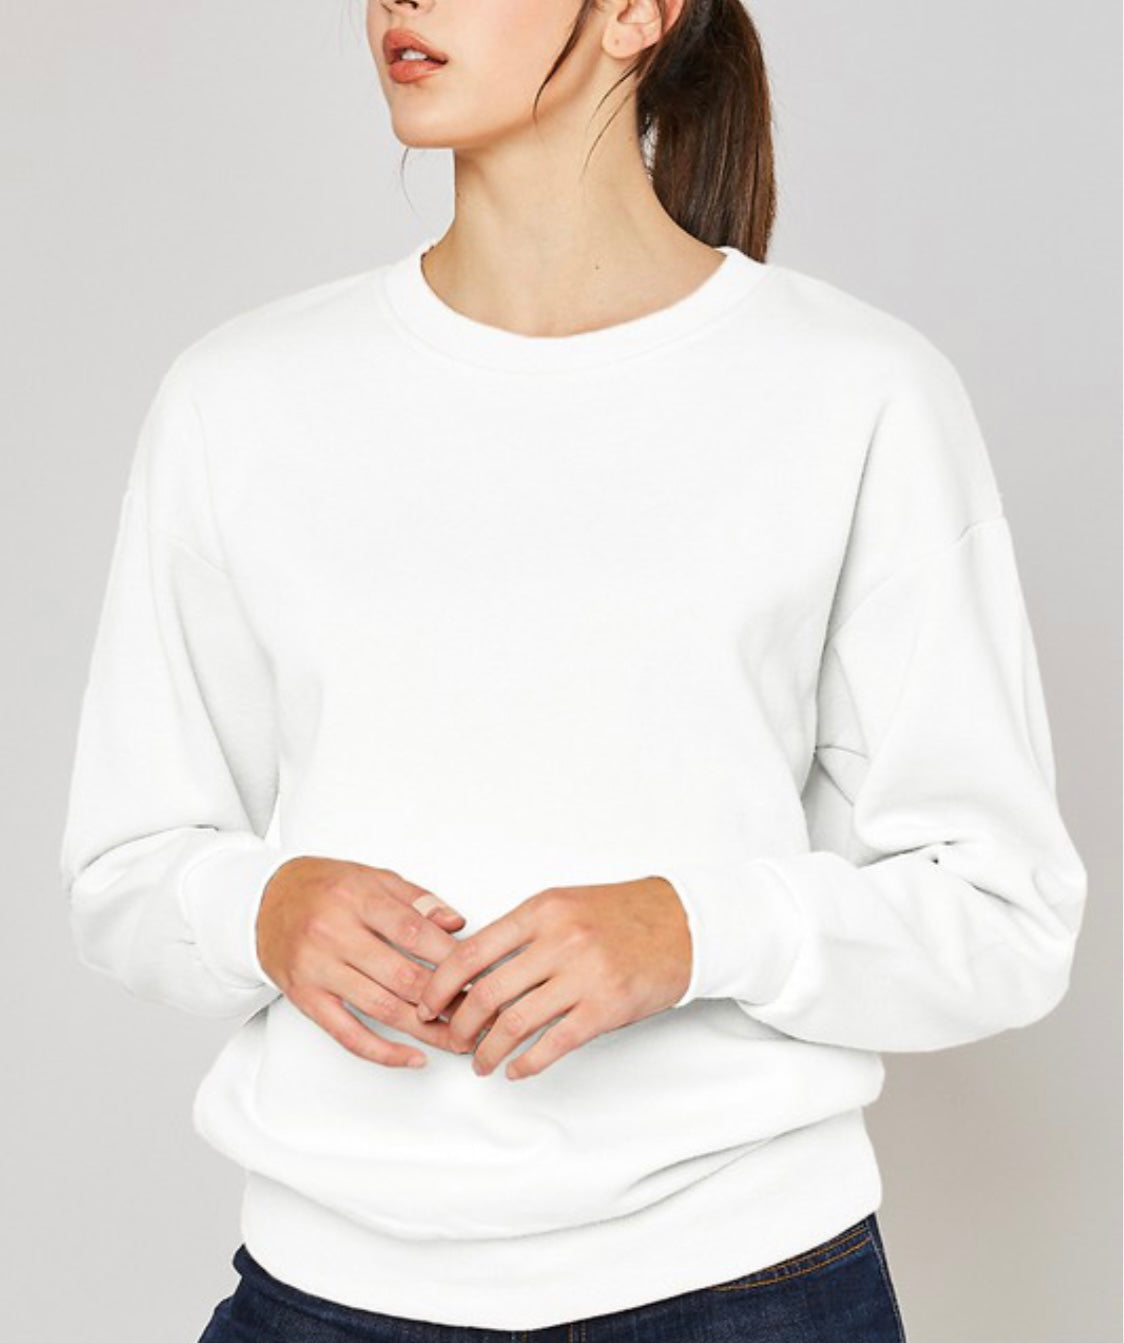 Hastings Sweatshirt